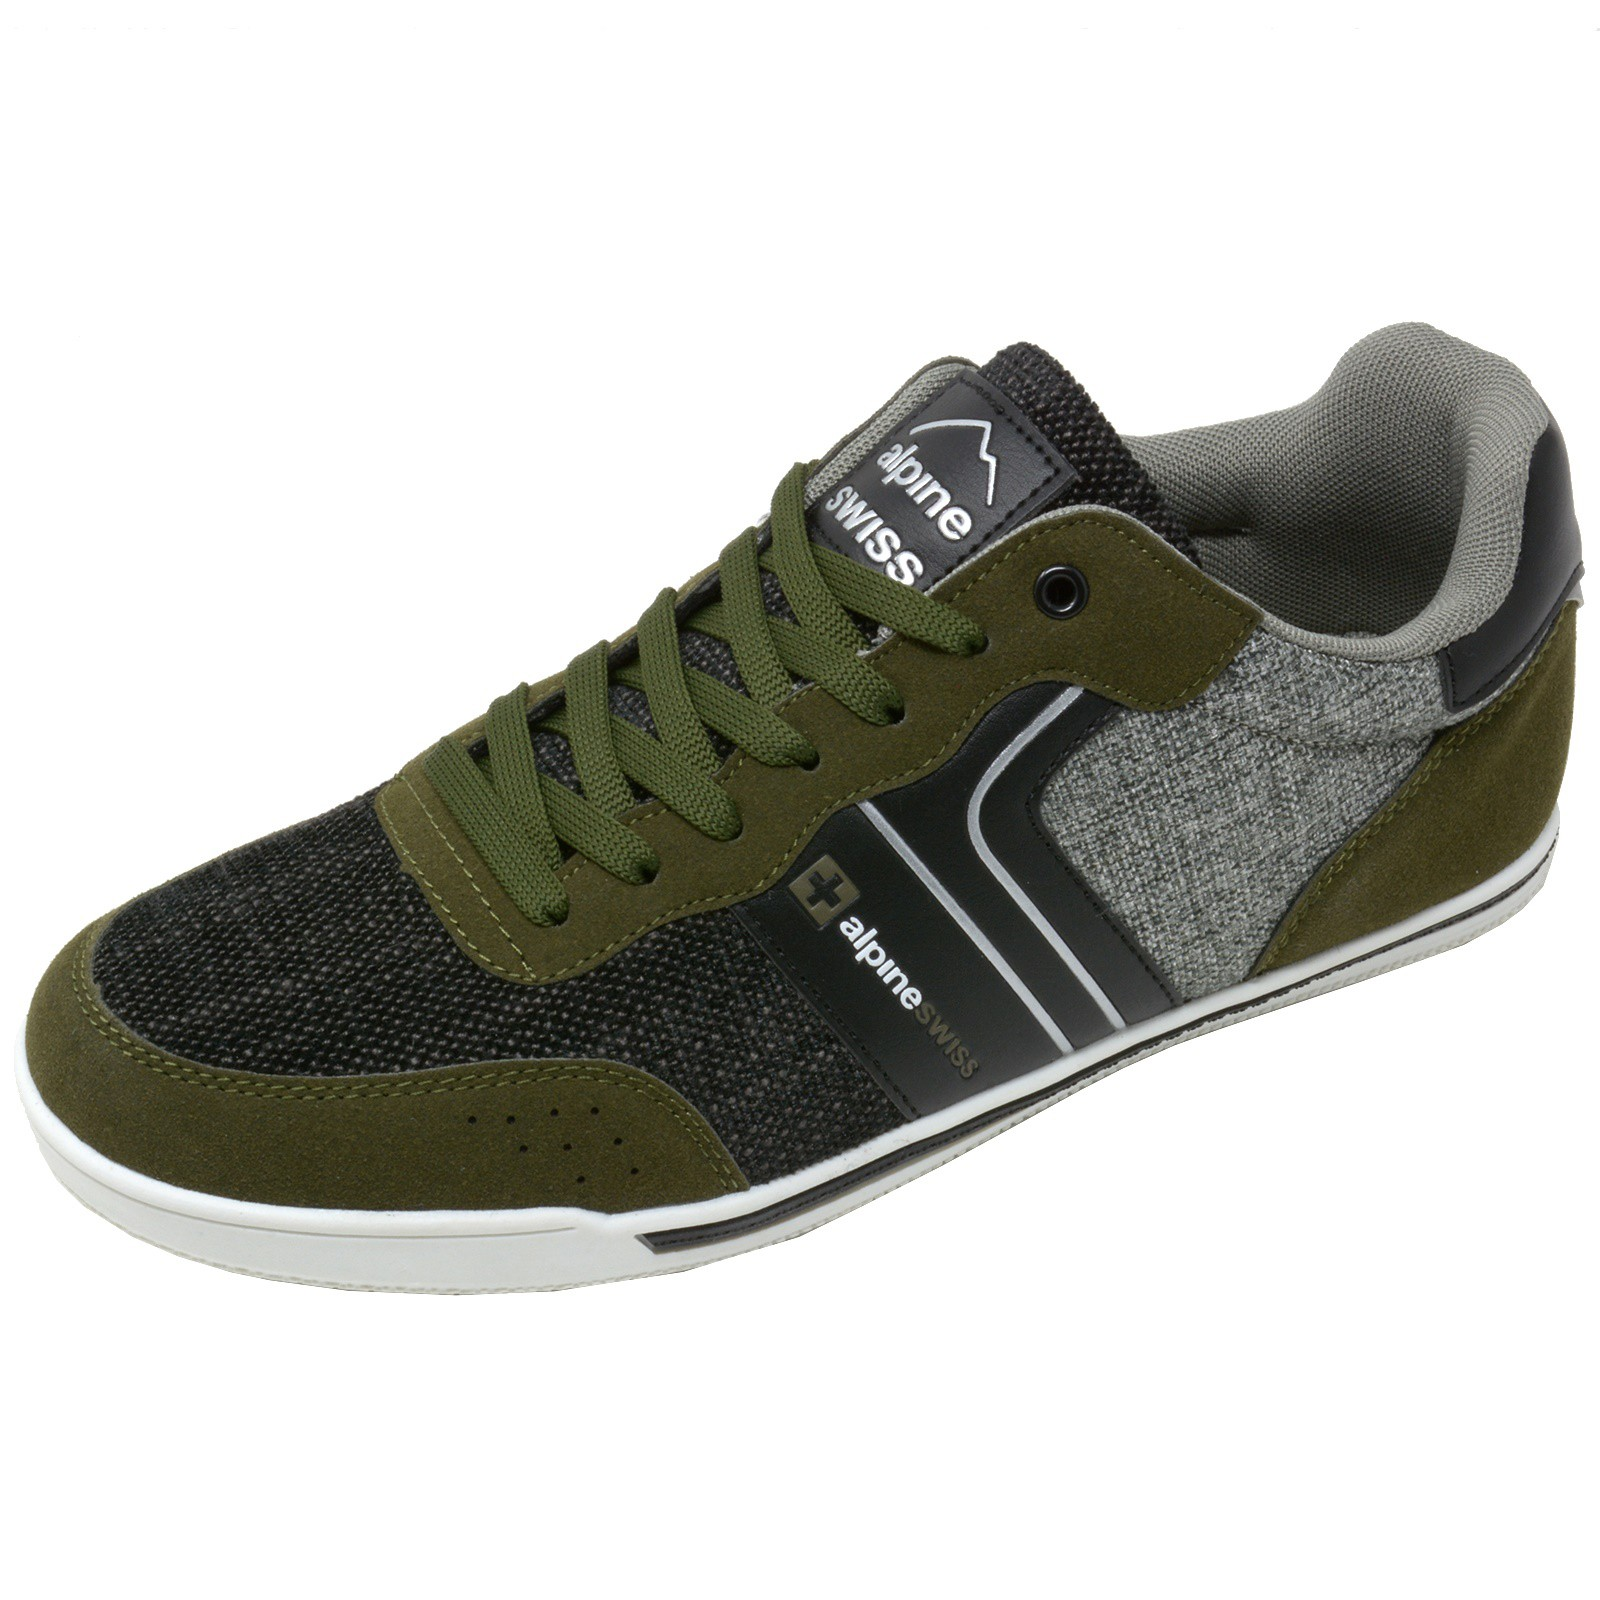 Alpine-Swiss-Liam-Mens-Fashion-Sneakers-Suede-Trim-Low-Top-Lace-Up-Tennis-Shoes thumbnail 48